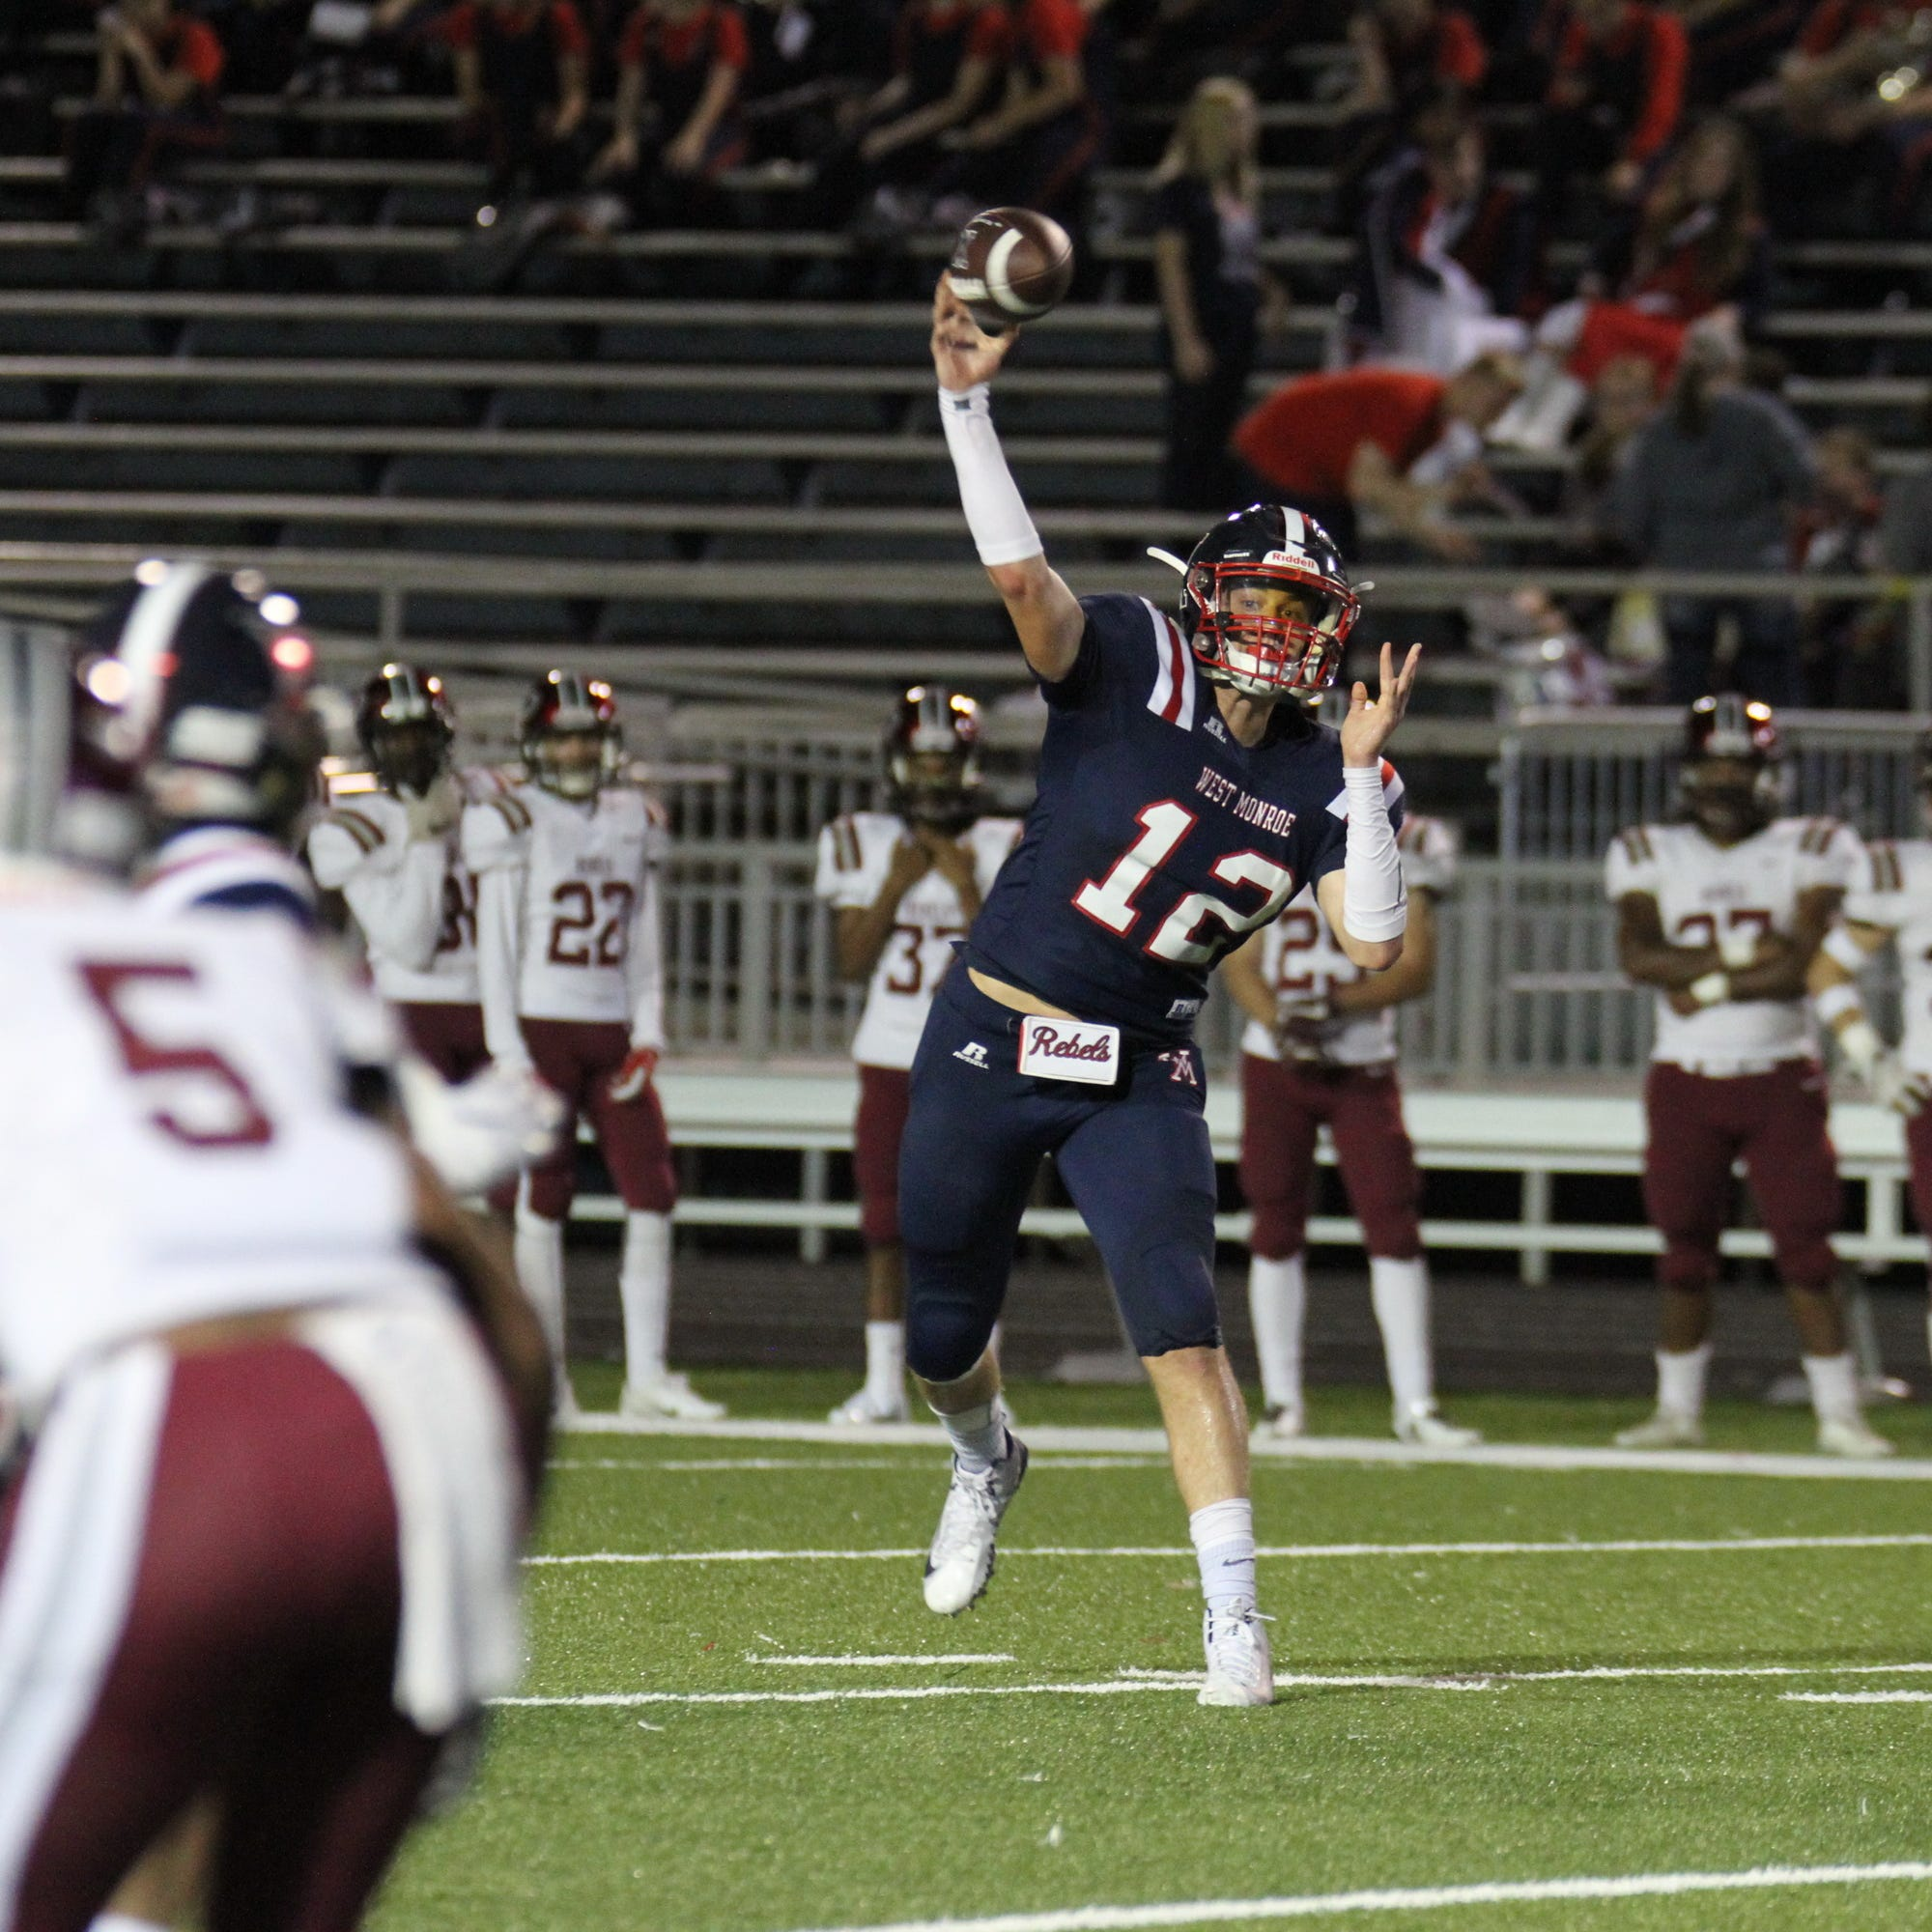 West Monroe junior quarterback Garrett Kahmann (12) rifles a pass against Pineville Friday, Oct. 19, 2018 at Rebel Stadium.